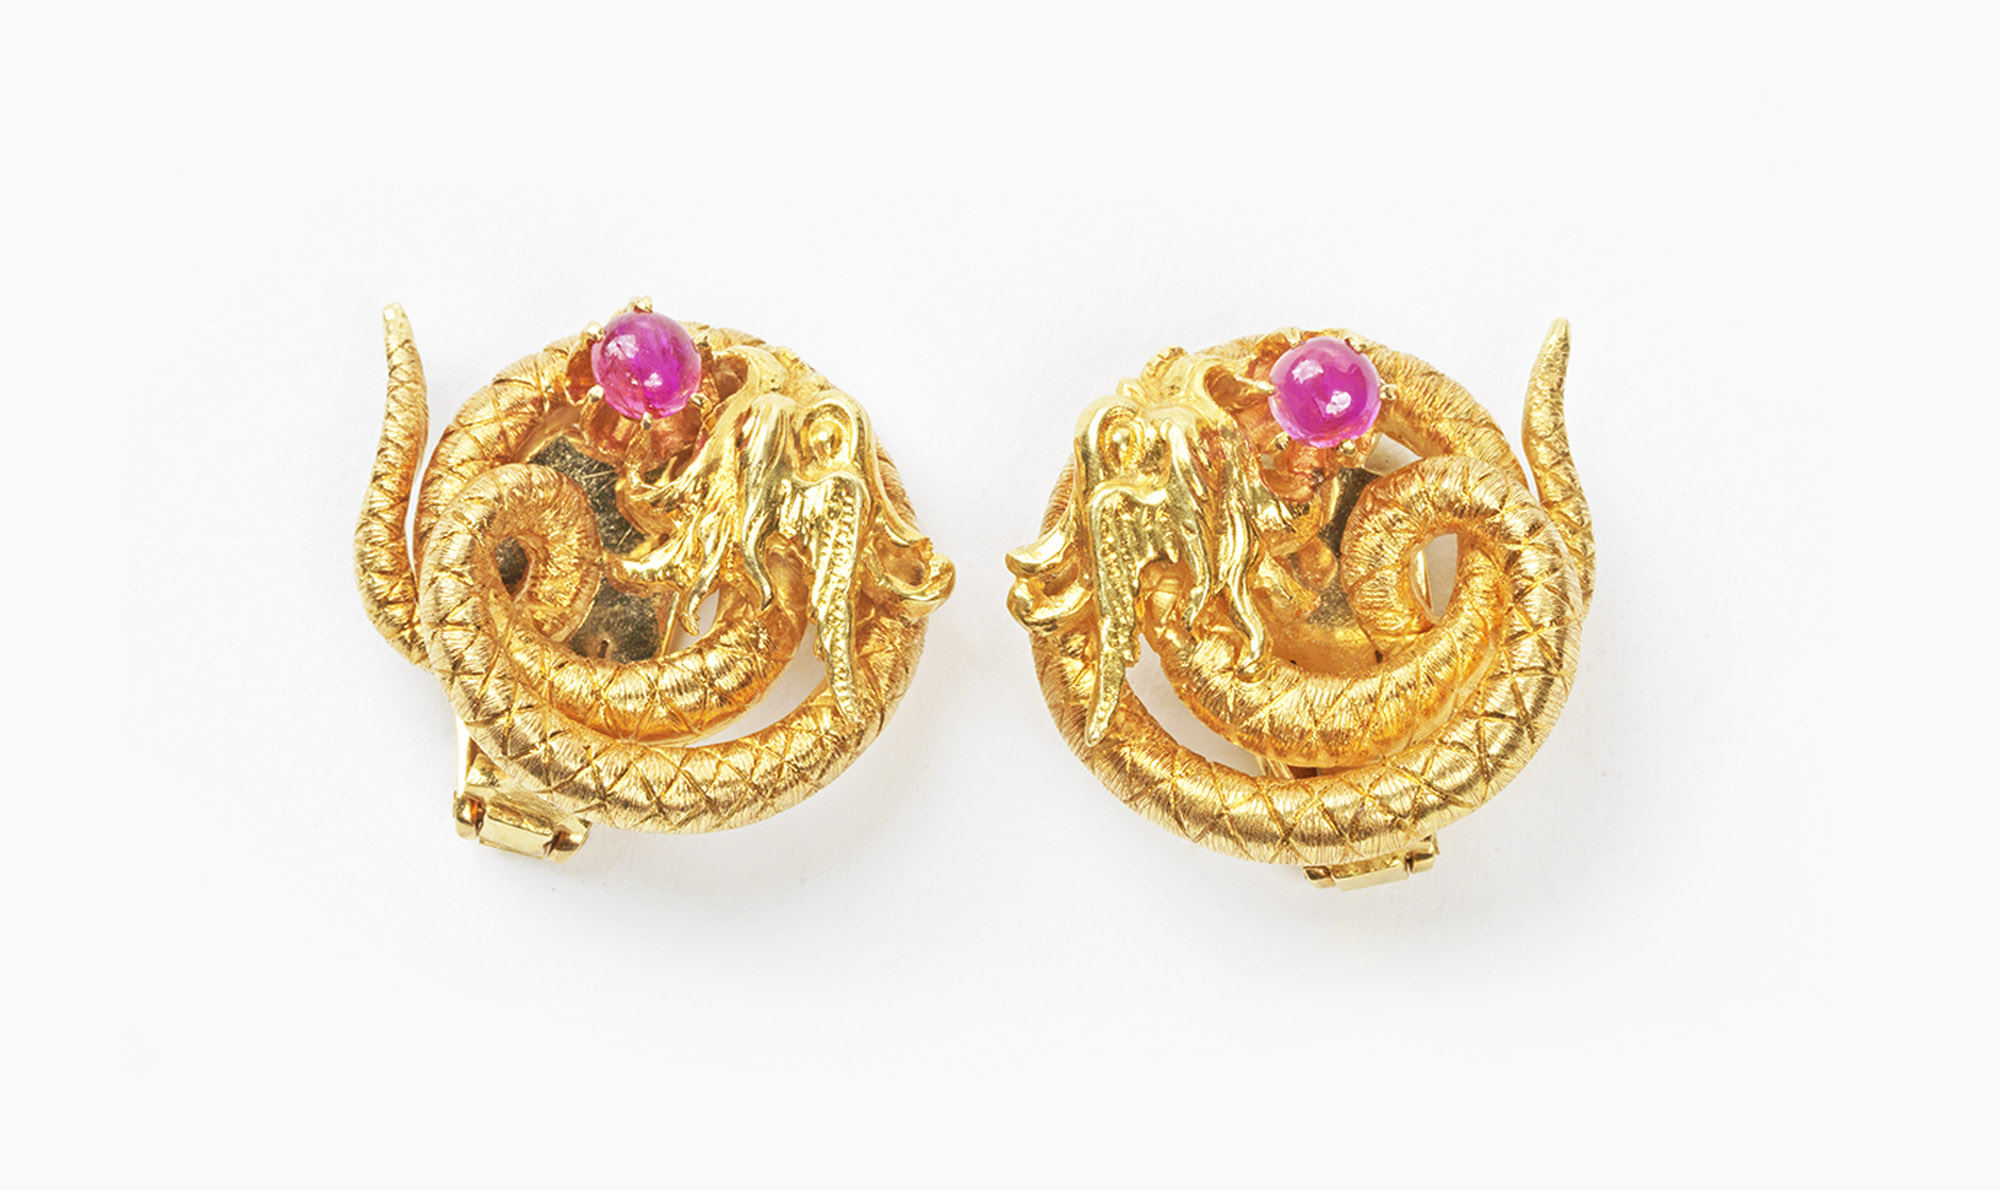 Ilias Lalaounis - Pair of ruby, dragon shaped earrings